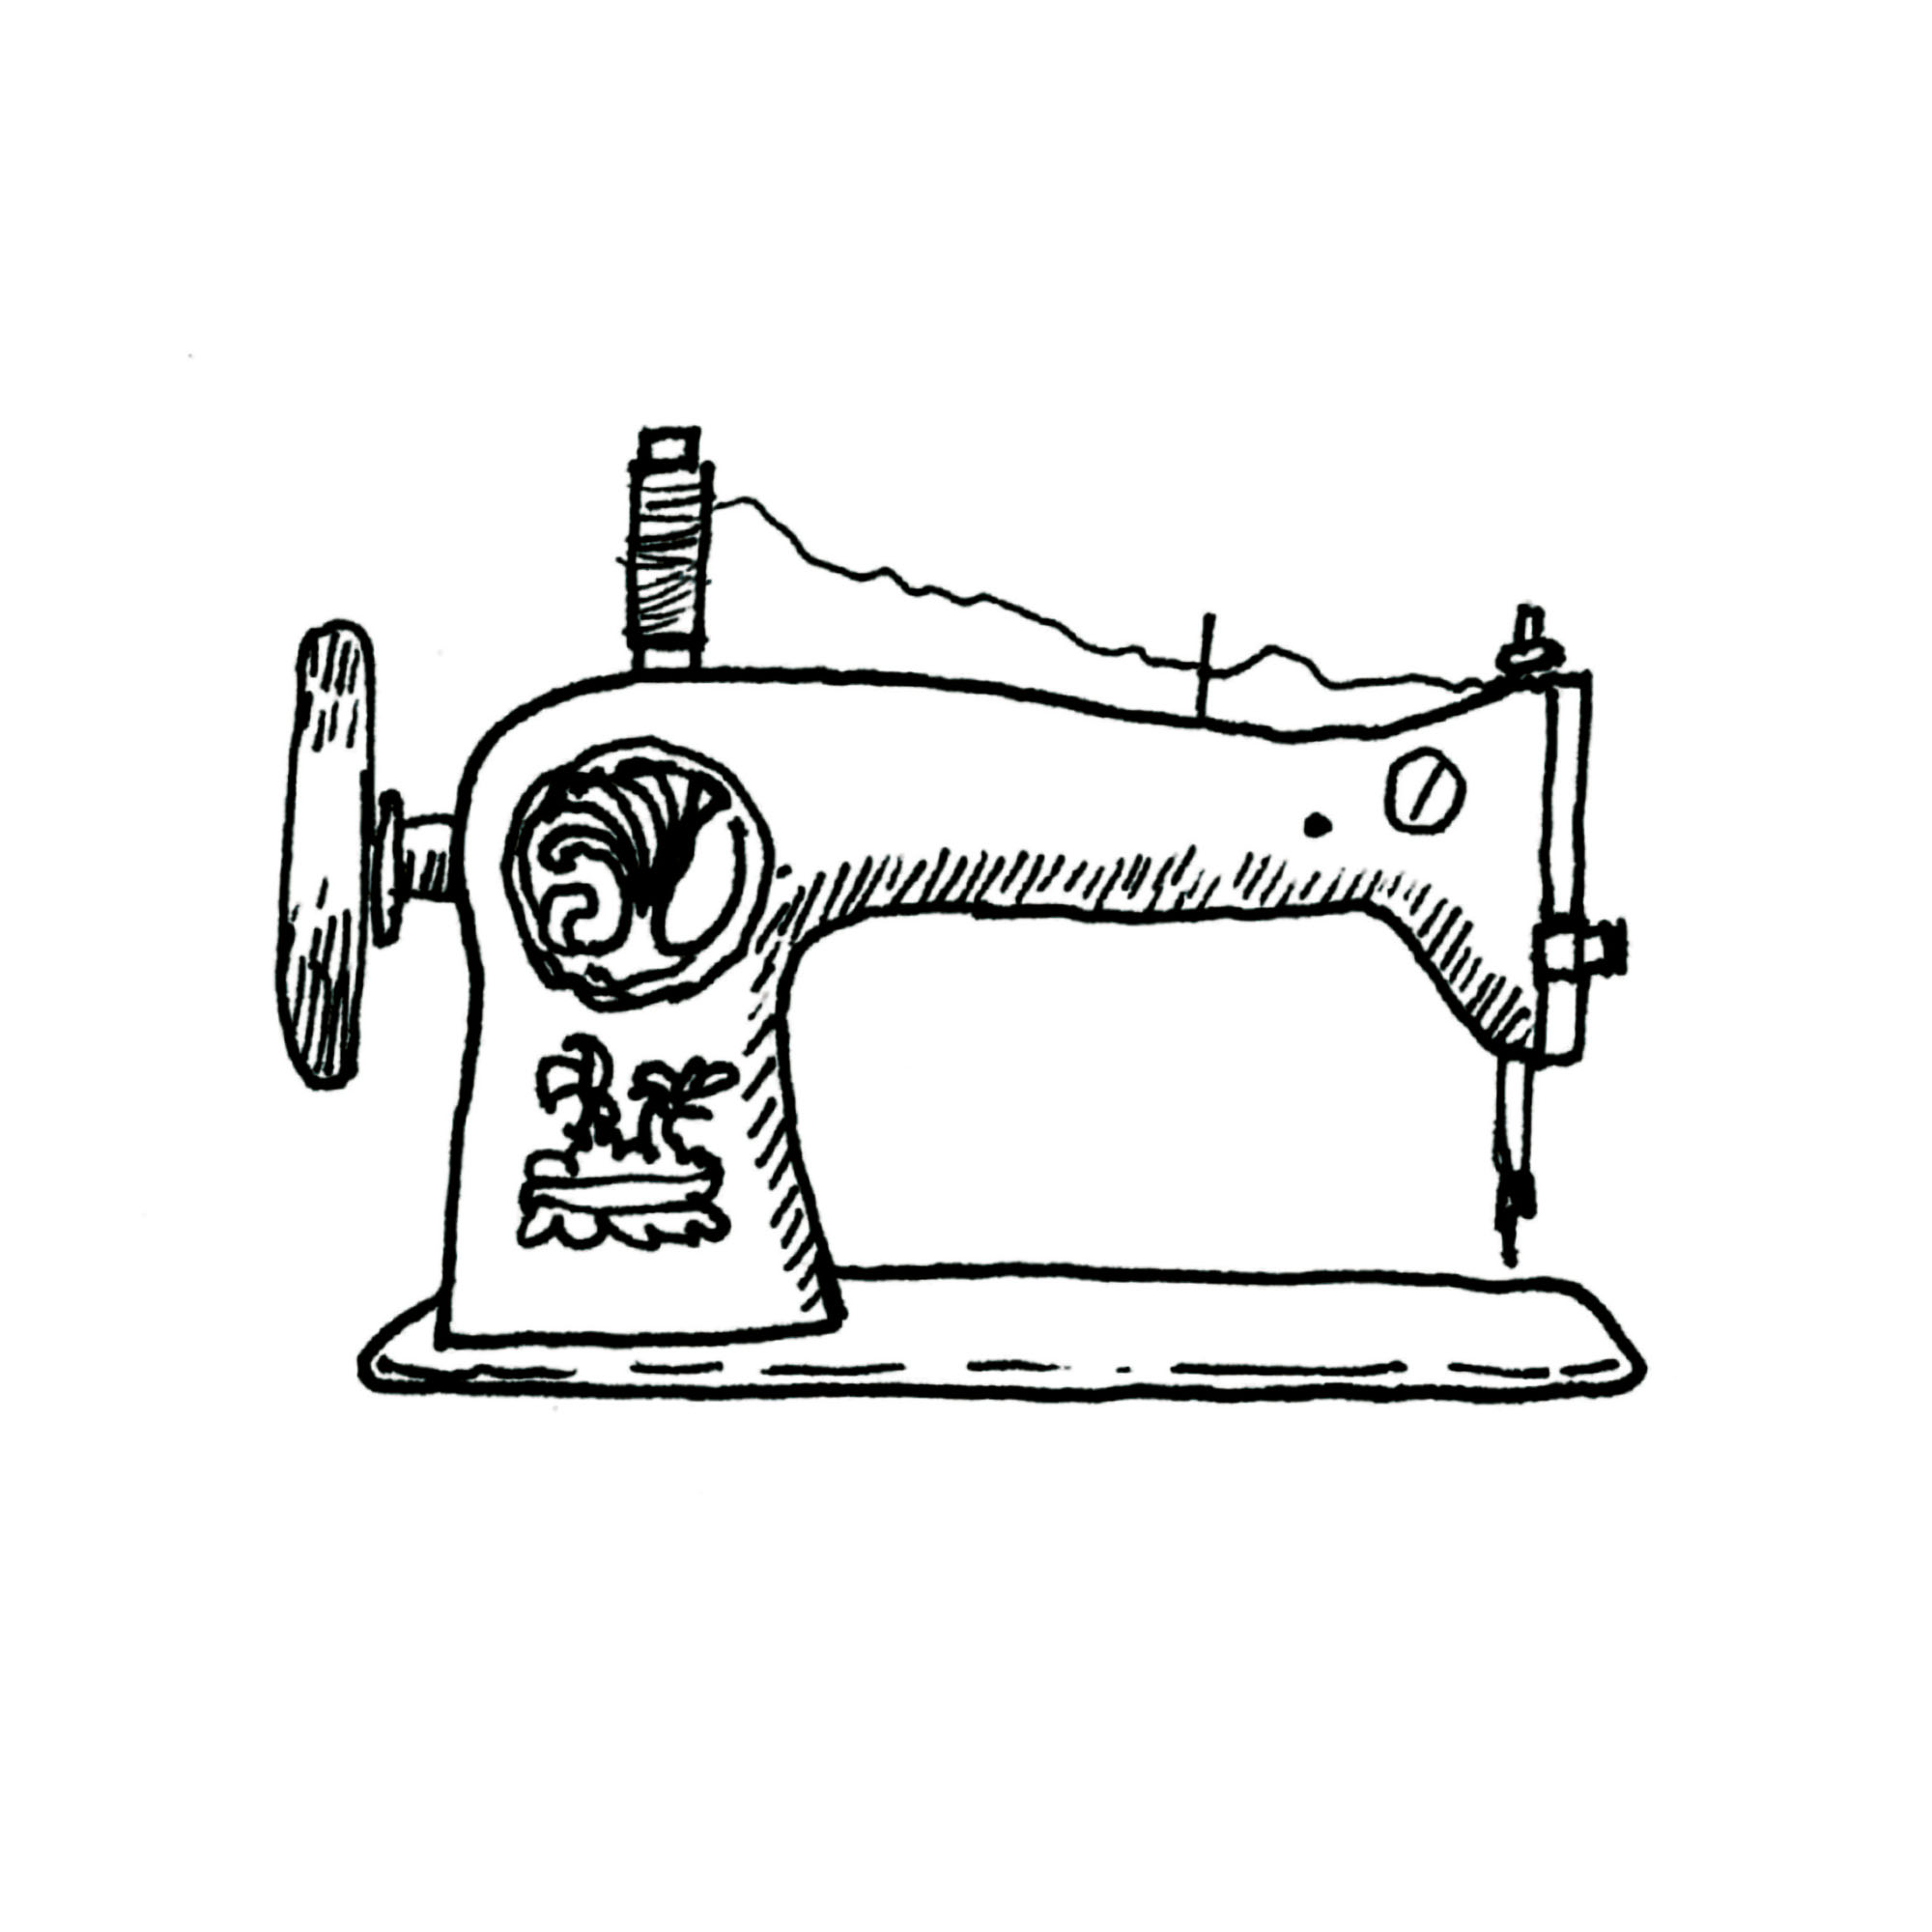 Gift of a Sewing Machine